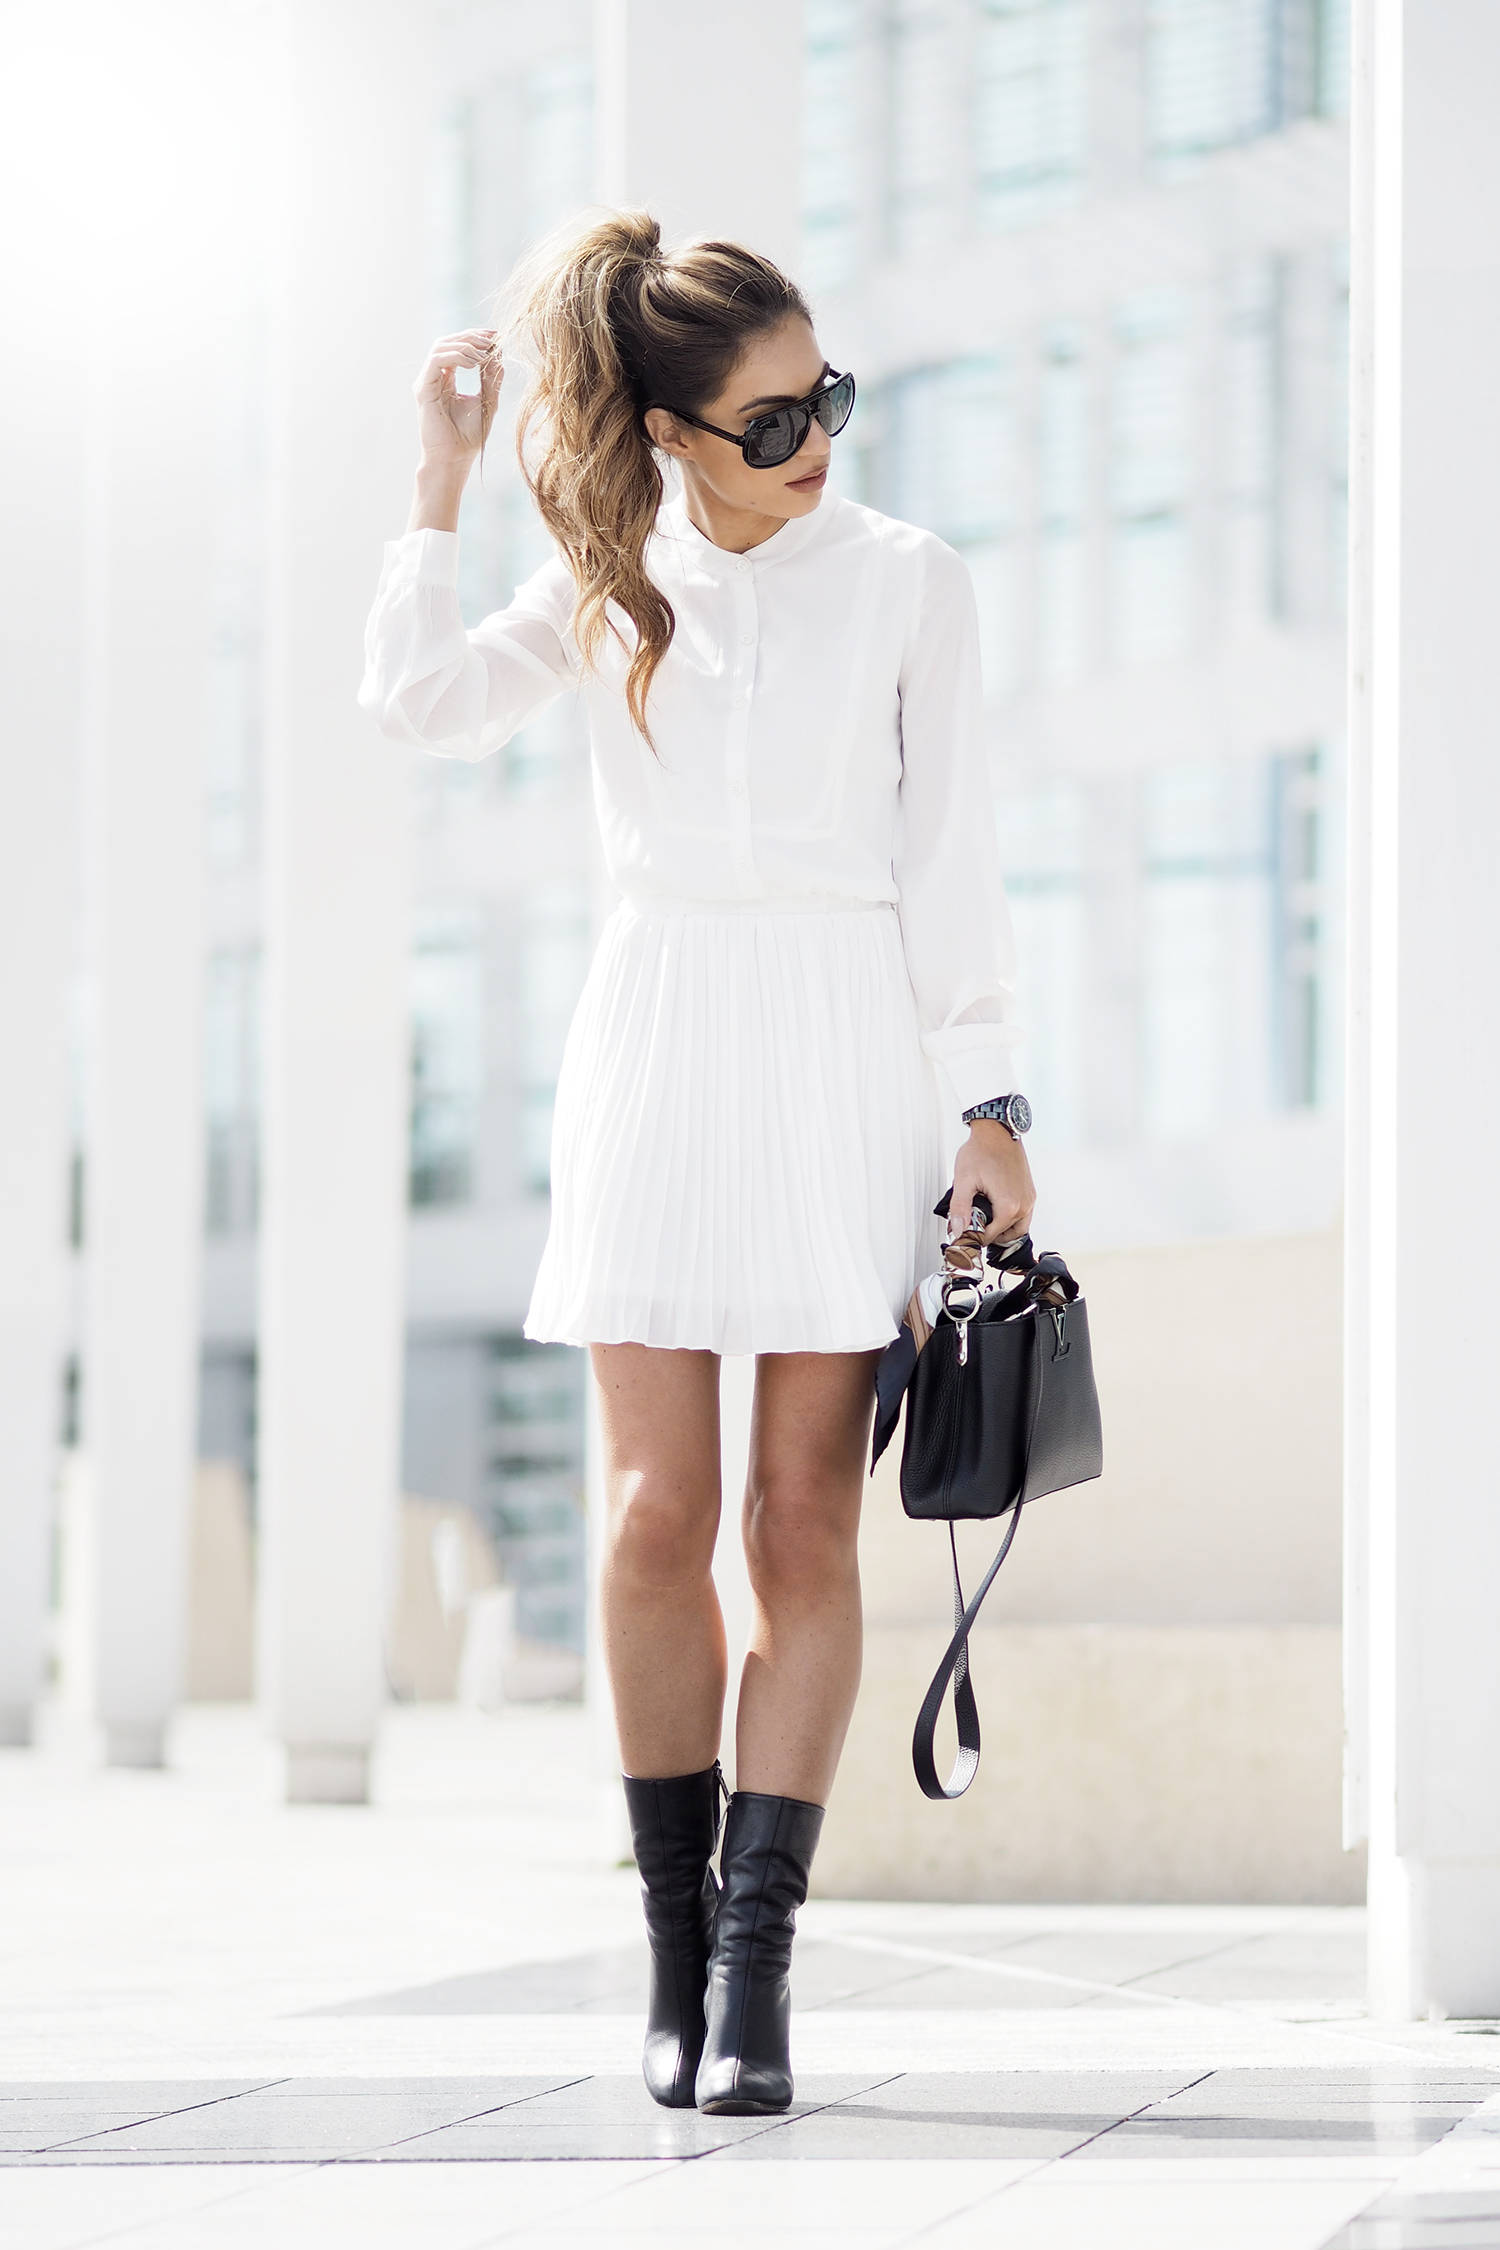 Lydia Lise Millen is a vision in all white glamour! We love this cute pleated mini skirt, worn as part of a dress with a matching white button up shirt and contrasting black ankle boots. A black and white outfit is the way to go for simple sophistication! Dress: Unique21 @ Lipsy, Bag: Louis Vuitton, Scarf: Gucci, Boots: Chloe.